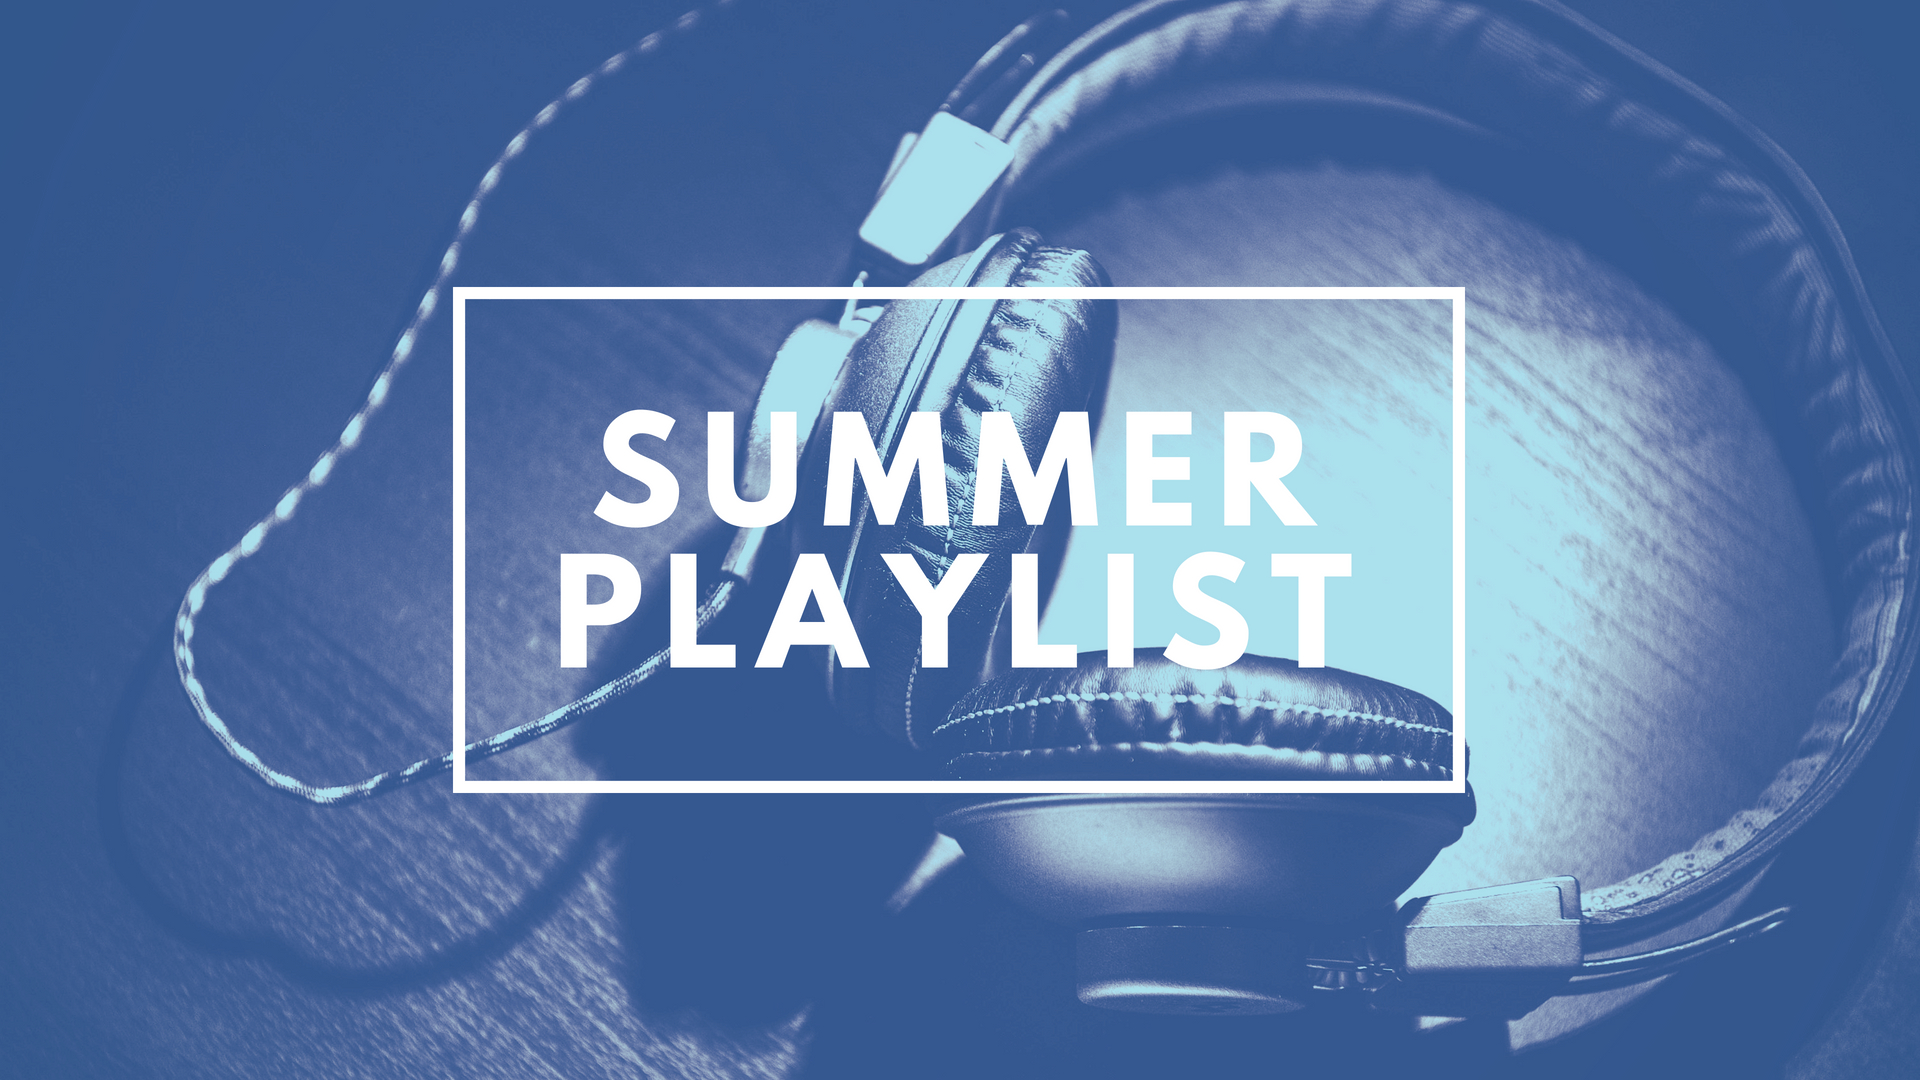 FINAL Summer Playlist (2).jpg